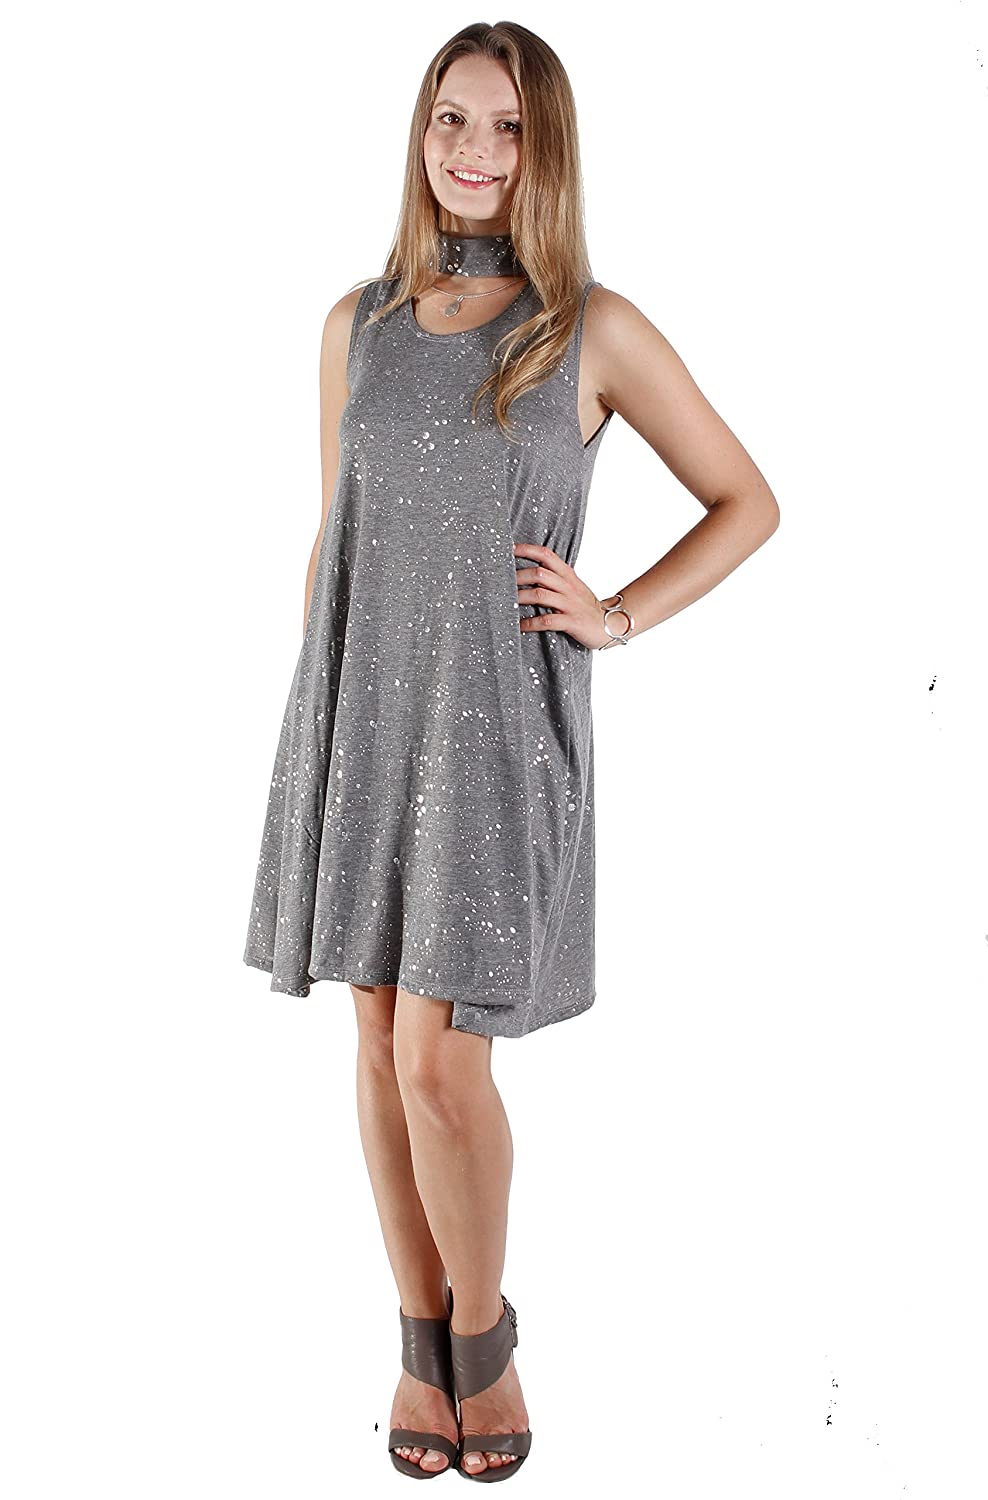 HaliCali DRESS レディース Sleeveless B075TWS2VZ Small|Gray Sleeveless レディース Gray Gray Sleeveless Small, AFRESHFEELING:bf418f1d --- sametyakan.com.tr